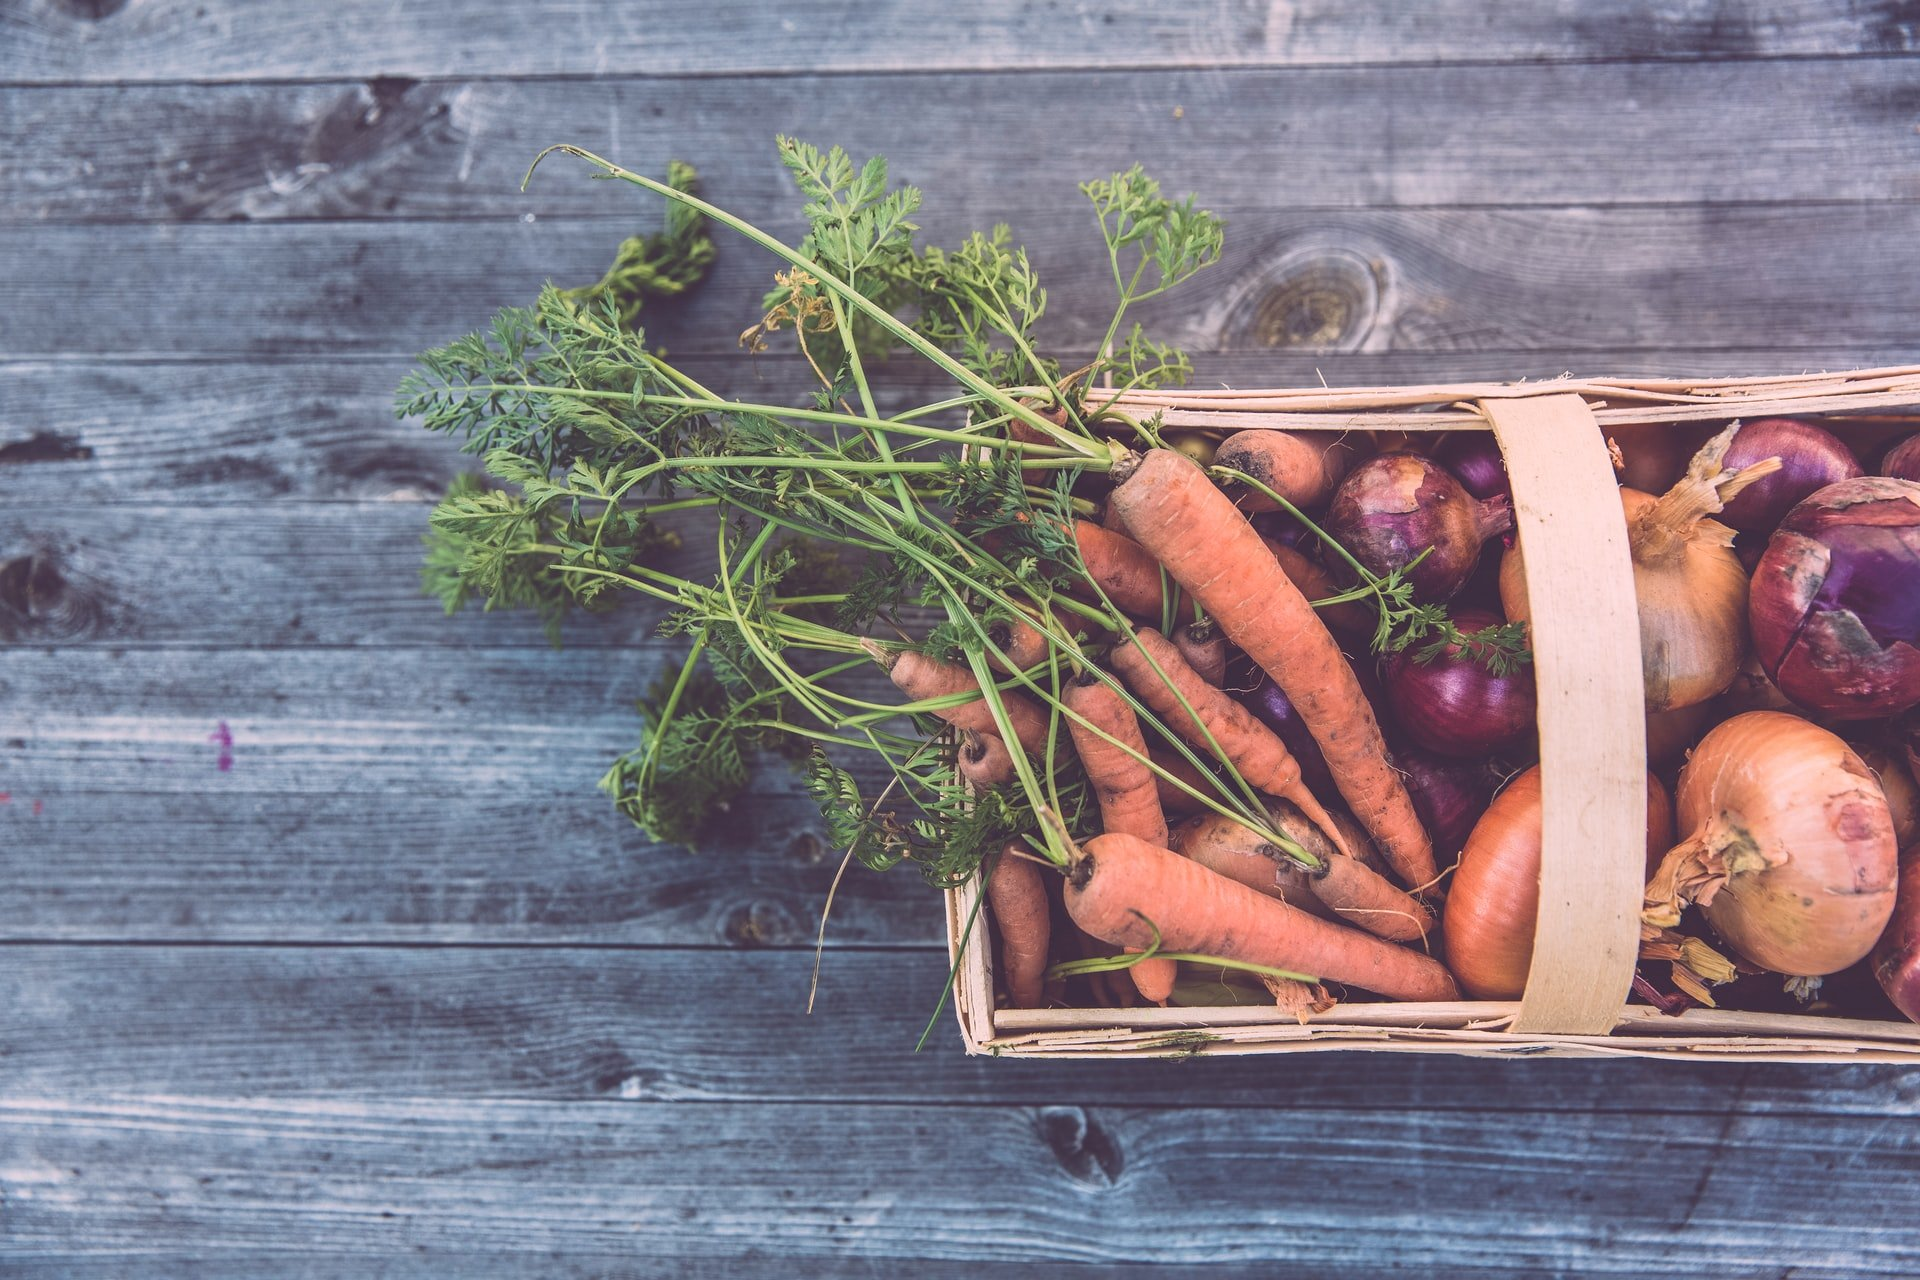 10 Ways To Eat Well And Reduce Your Carbon Footprint